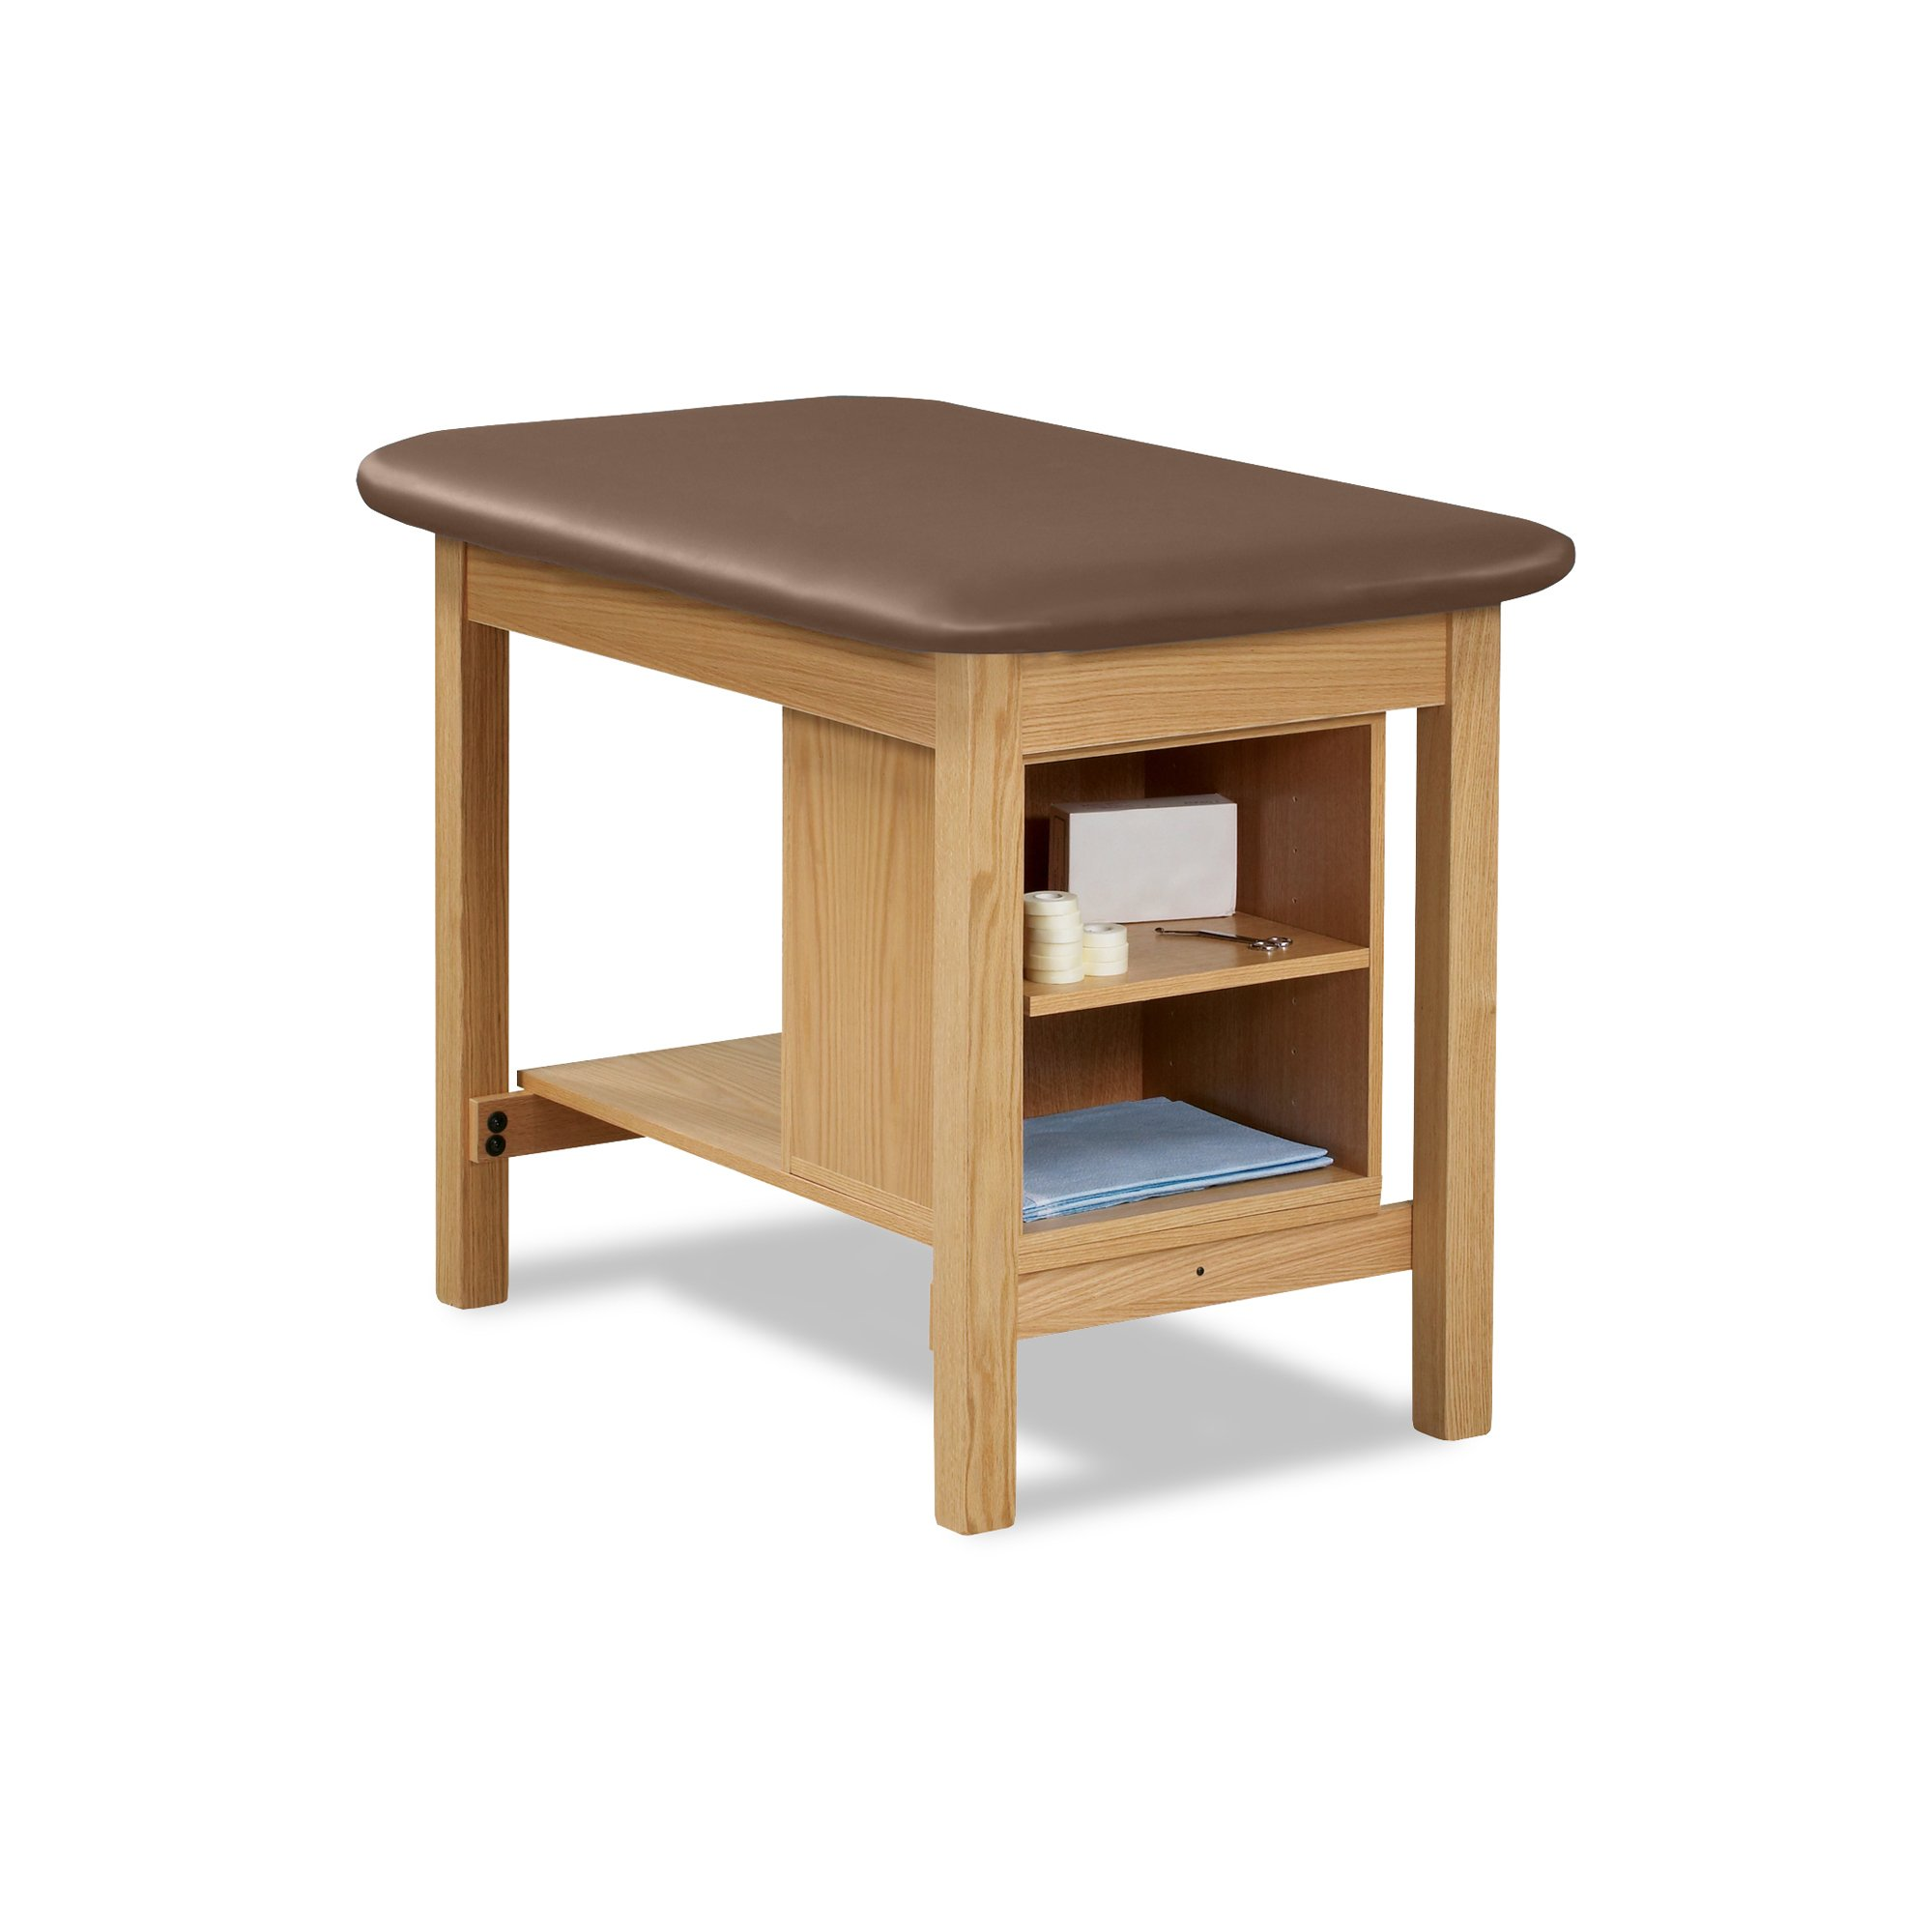 27'' Width Taping Table with Shelf Storage Natural-Cappuccino